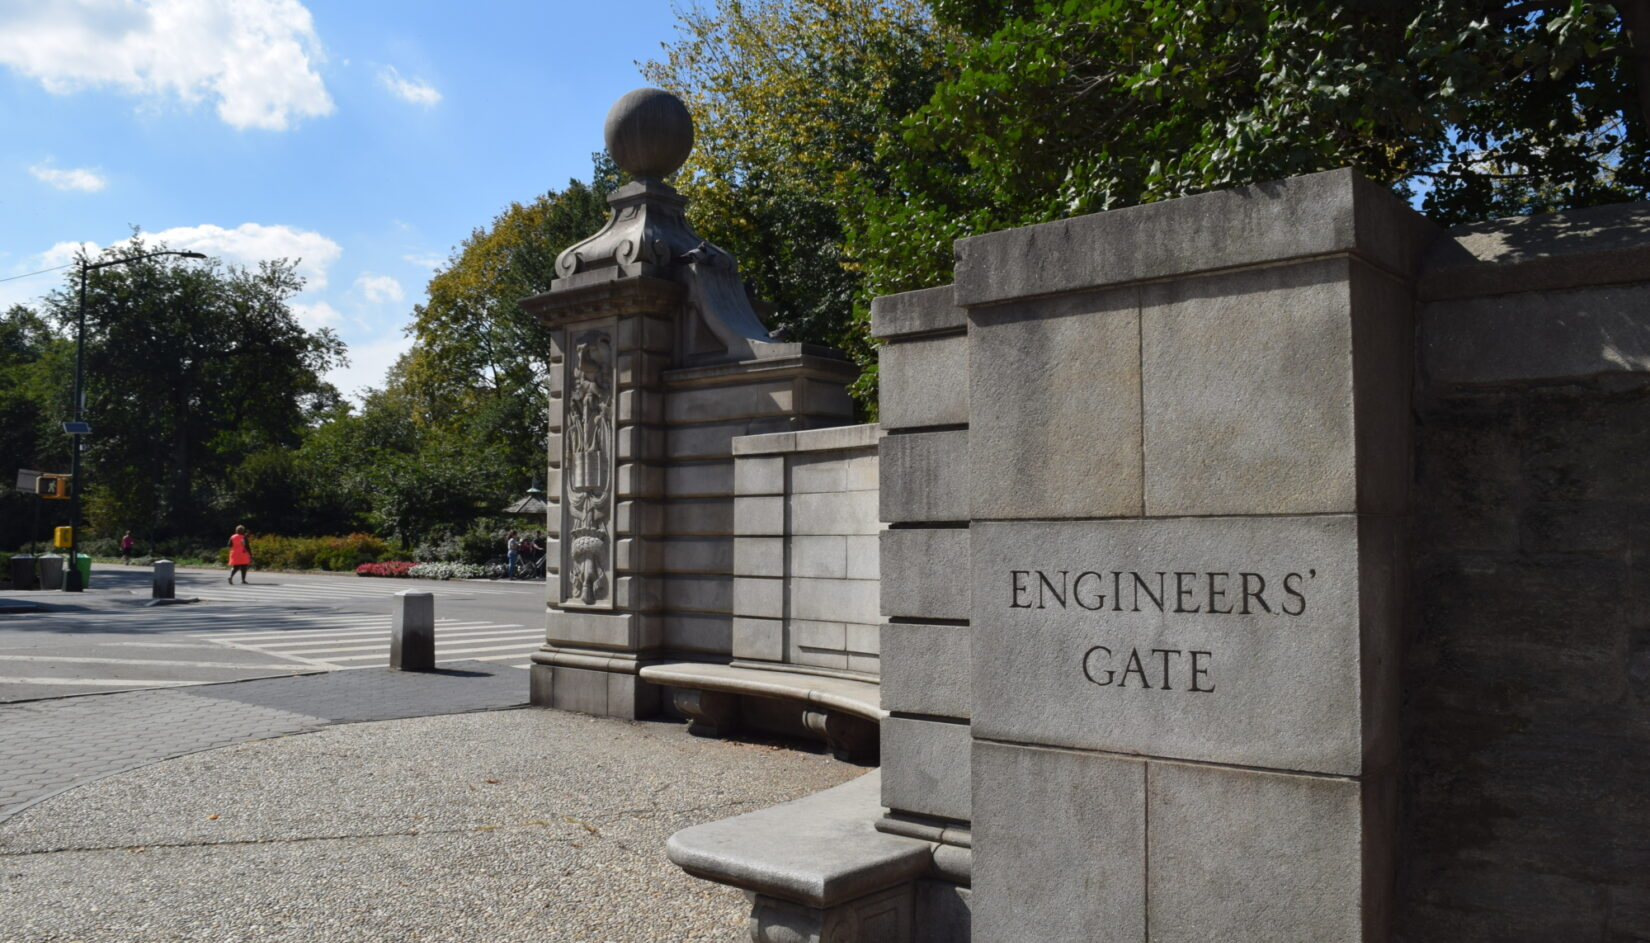 A view of Engineers' Gate in Summer showing blocks of curved stonework